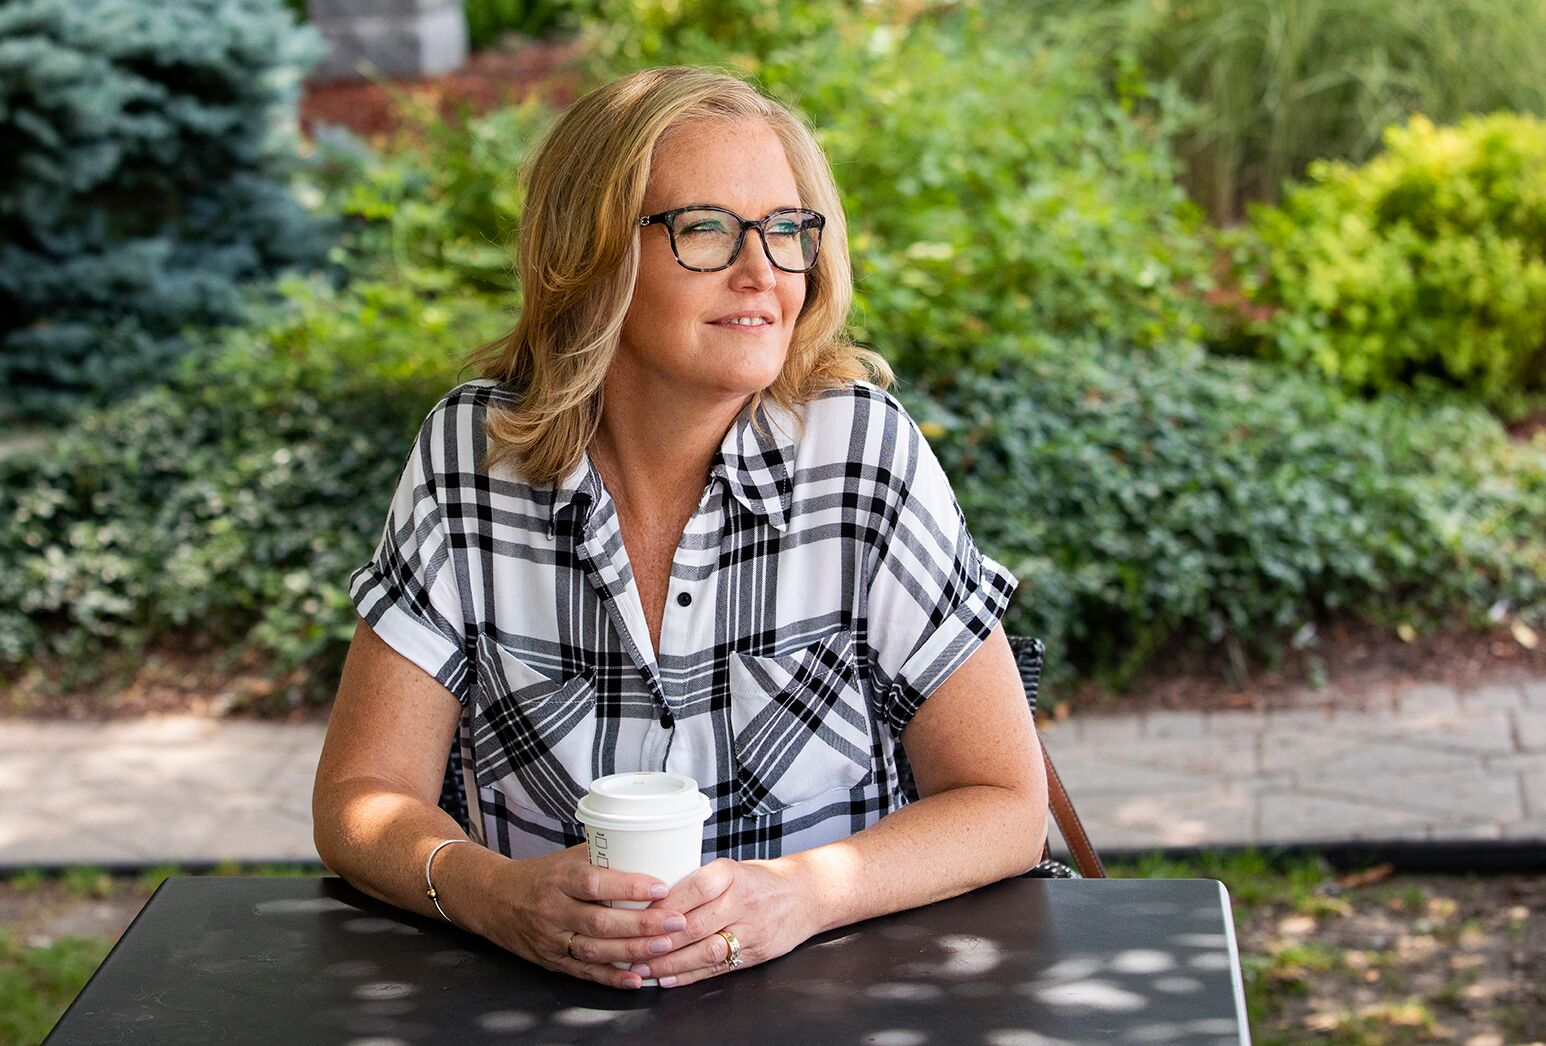 Blonde haired woman who had facial plastic surgery in plaid top and glasses, sitting with takeout coffee.